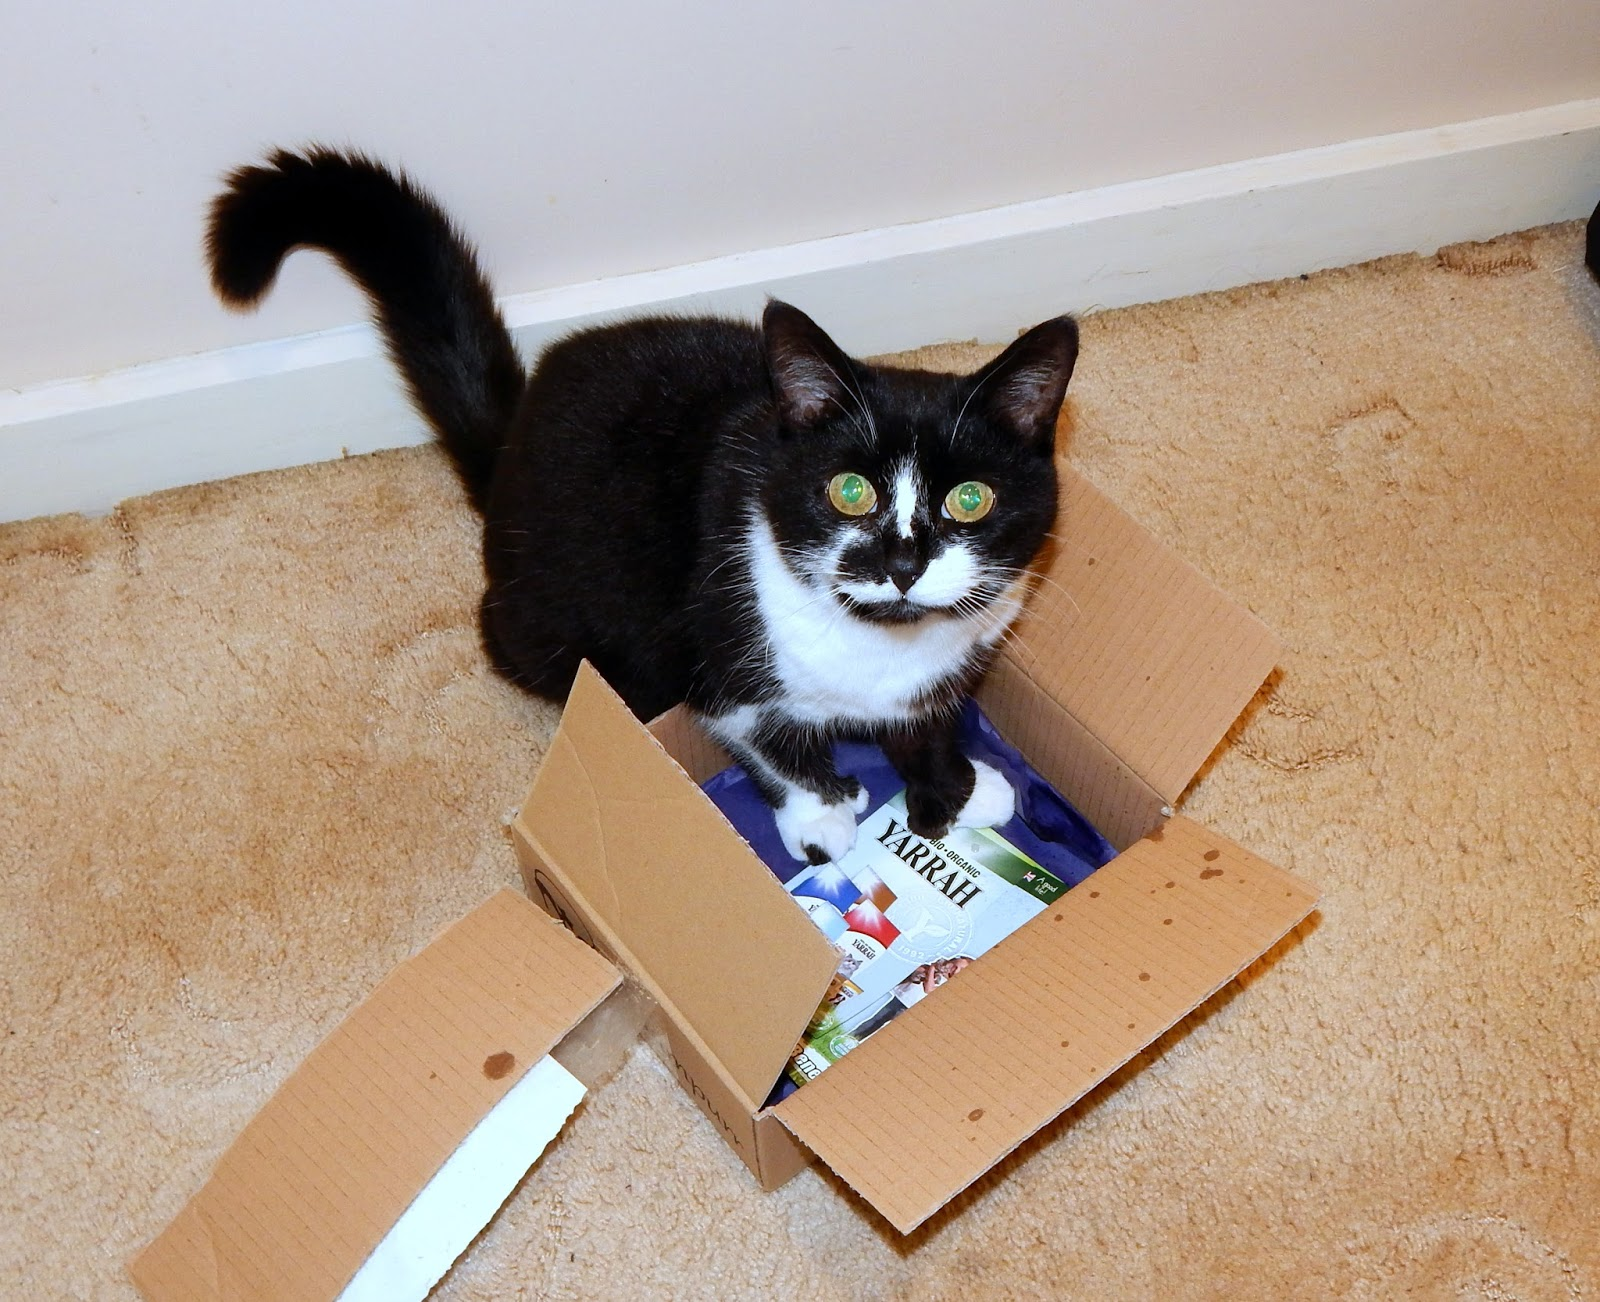 Cat Hampurr - The Subscription Box for you Cat!